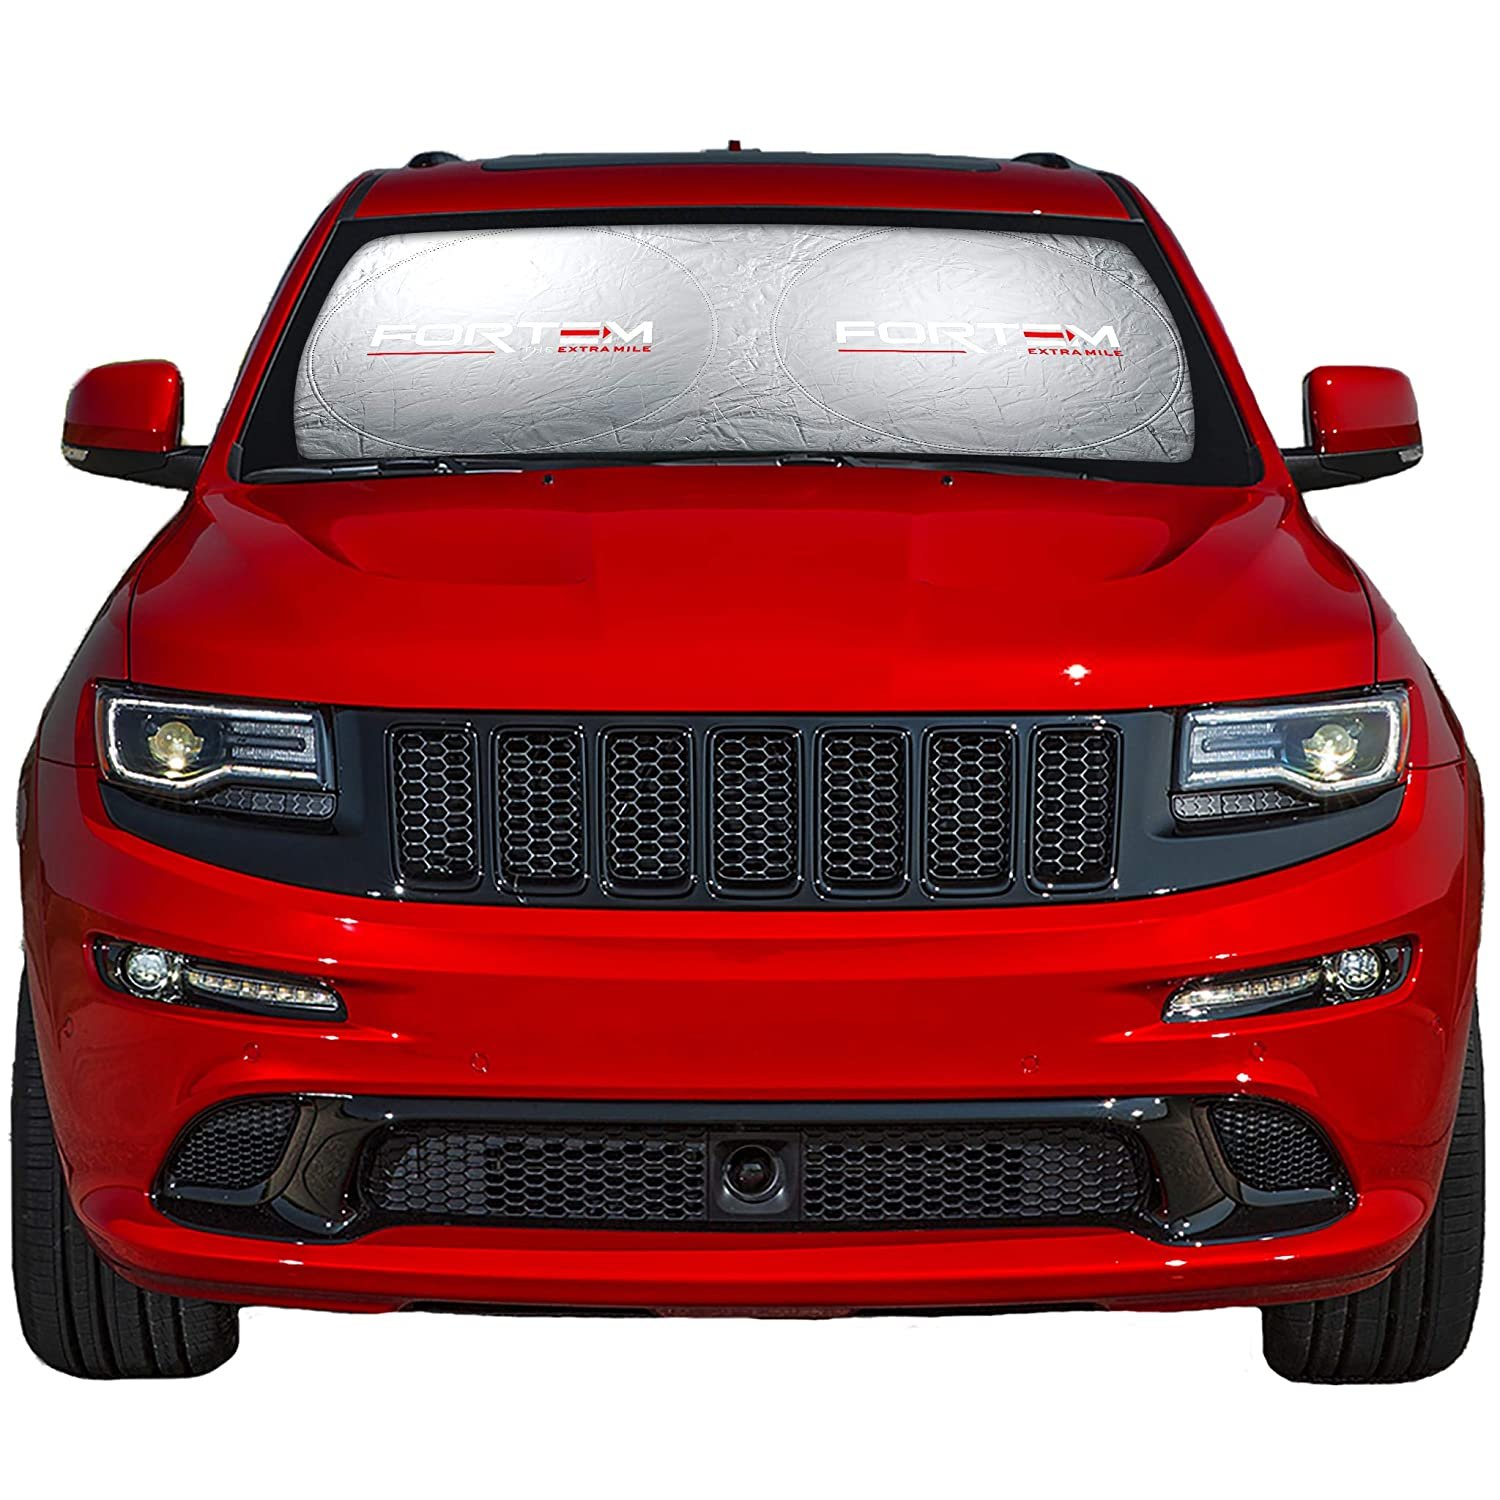 """FORTEM Car Windshield Sunshade, Keeps Out UV Rays, Protects Vehicle Interior (Large (63"""" x 34"""")"""